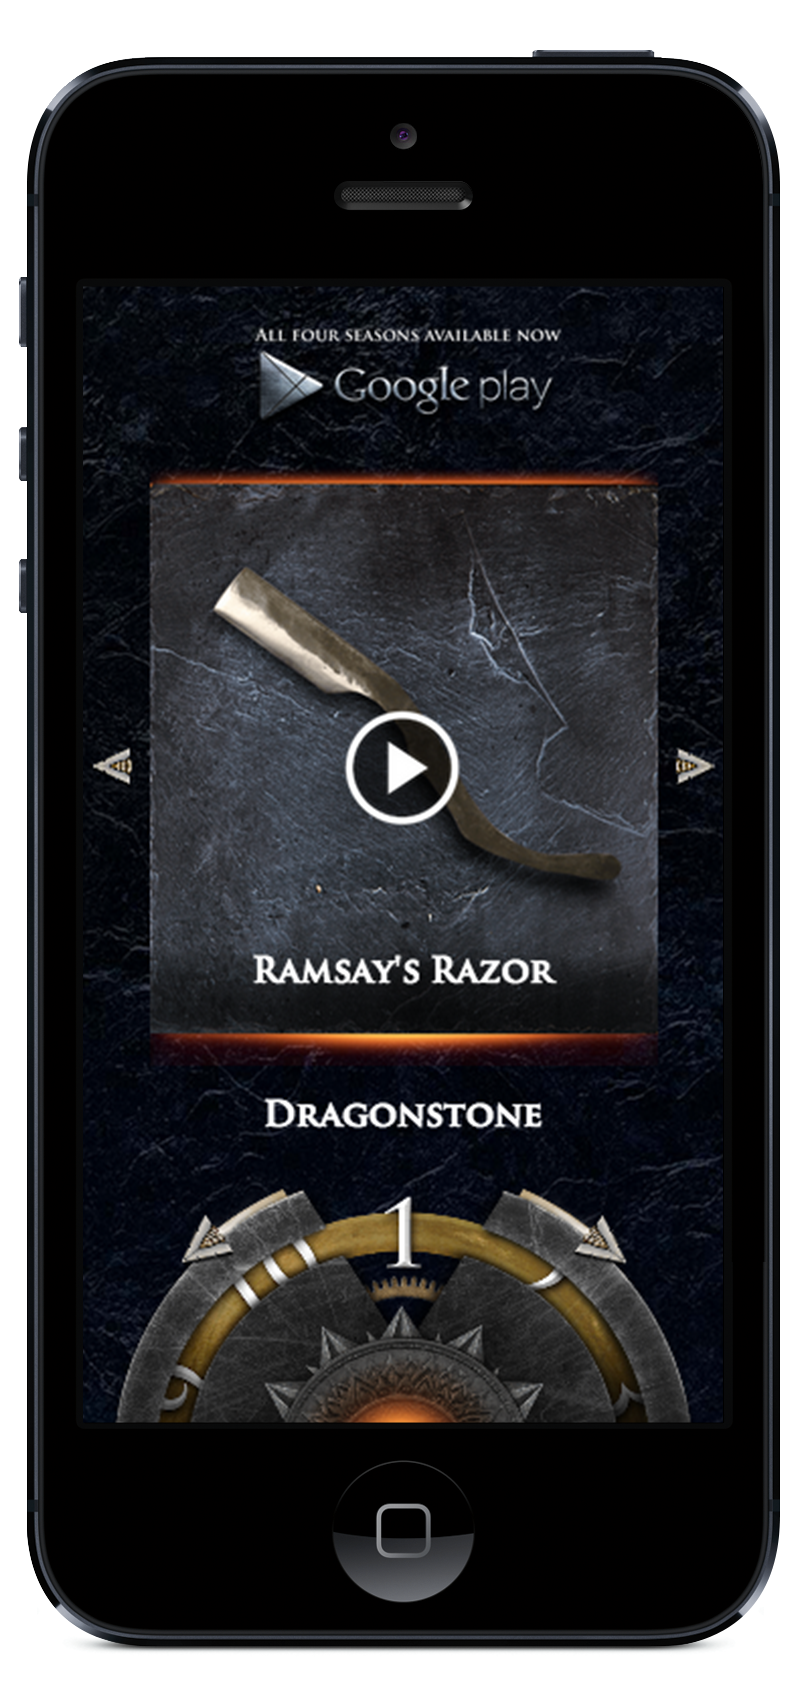 Game of Thrones mobile site